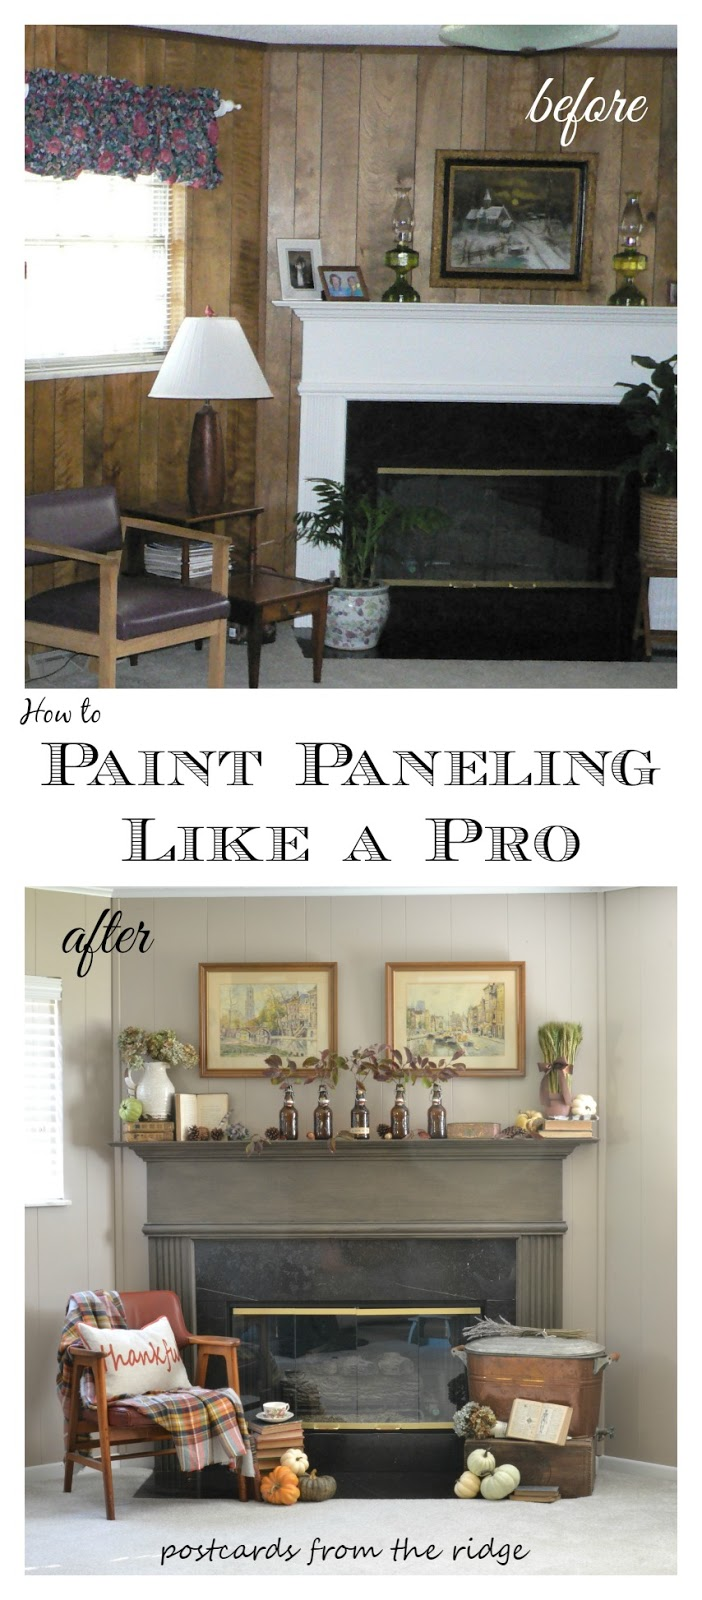 What Color To Paint Paneling Tutorial How To Paint Paneling Like A Pro Postcards From The Ridge